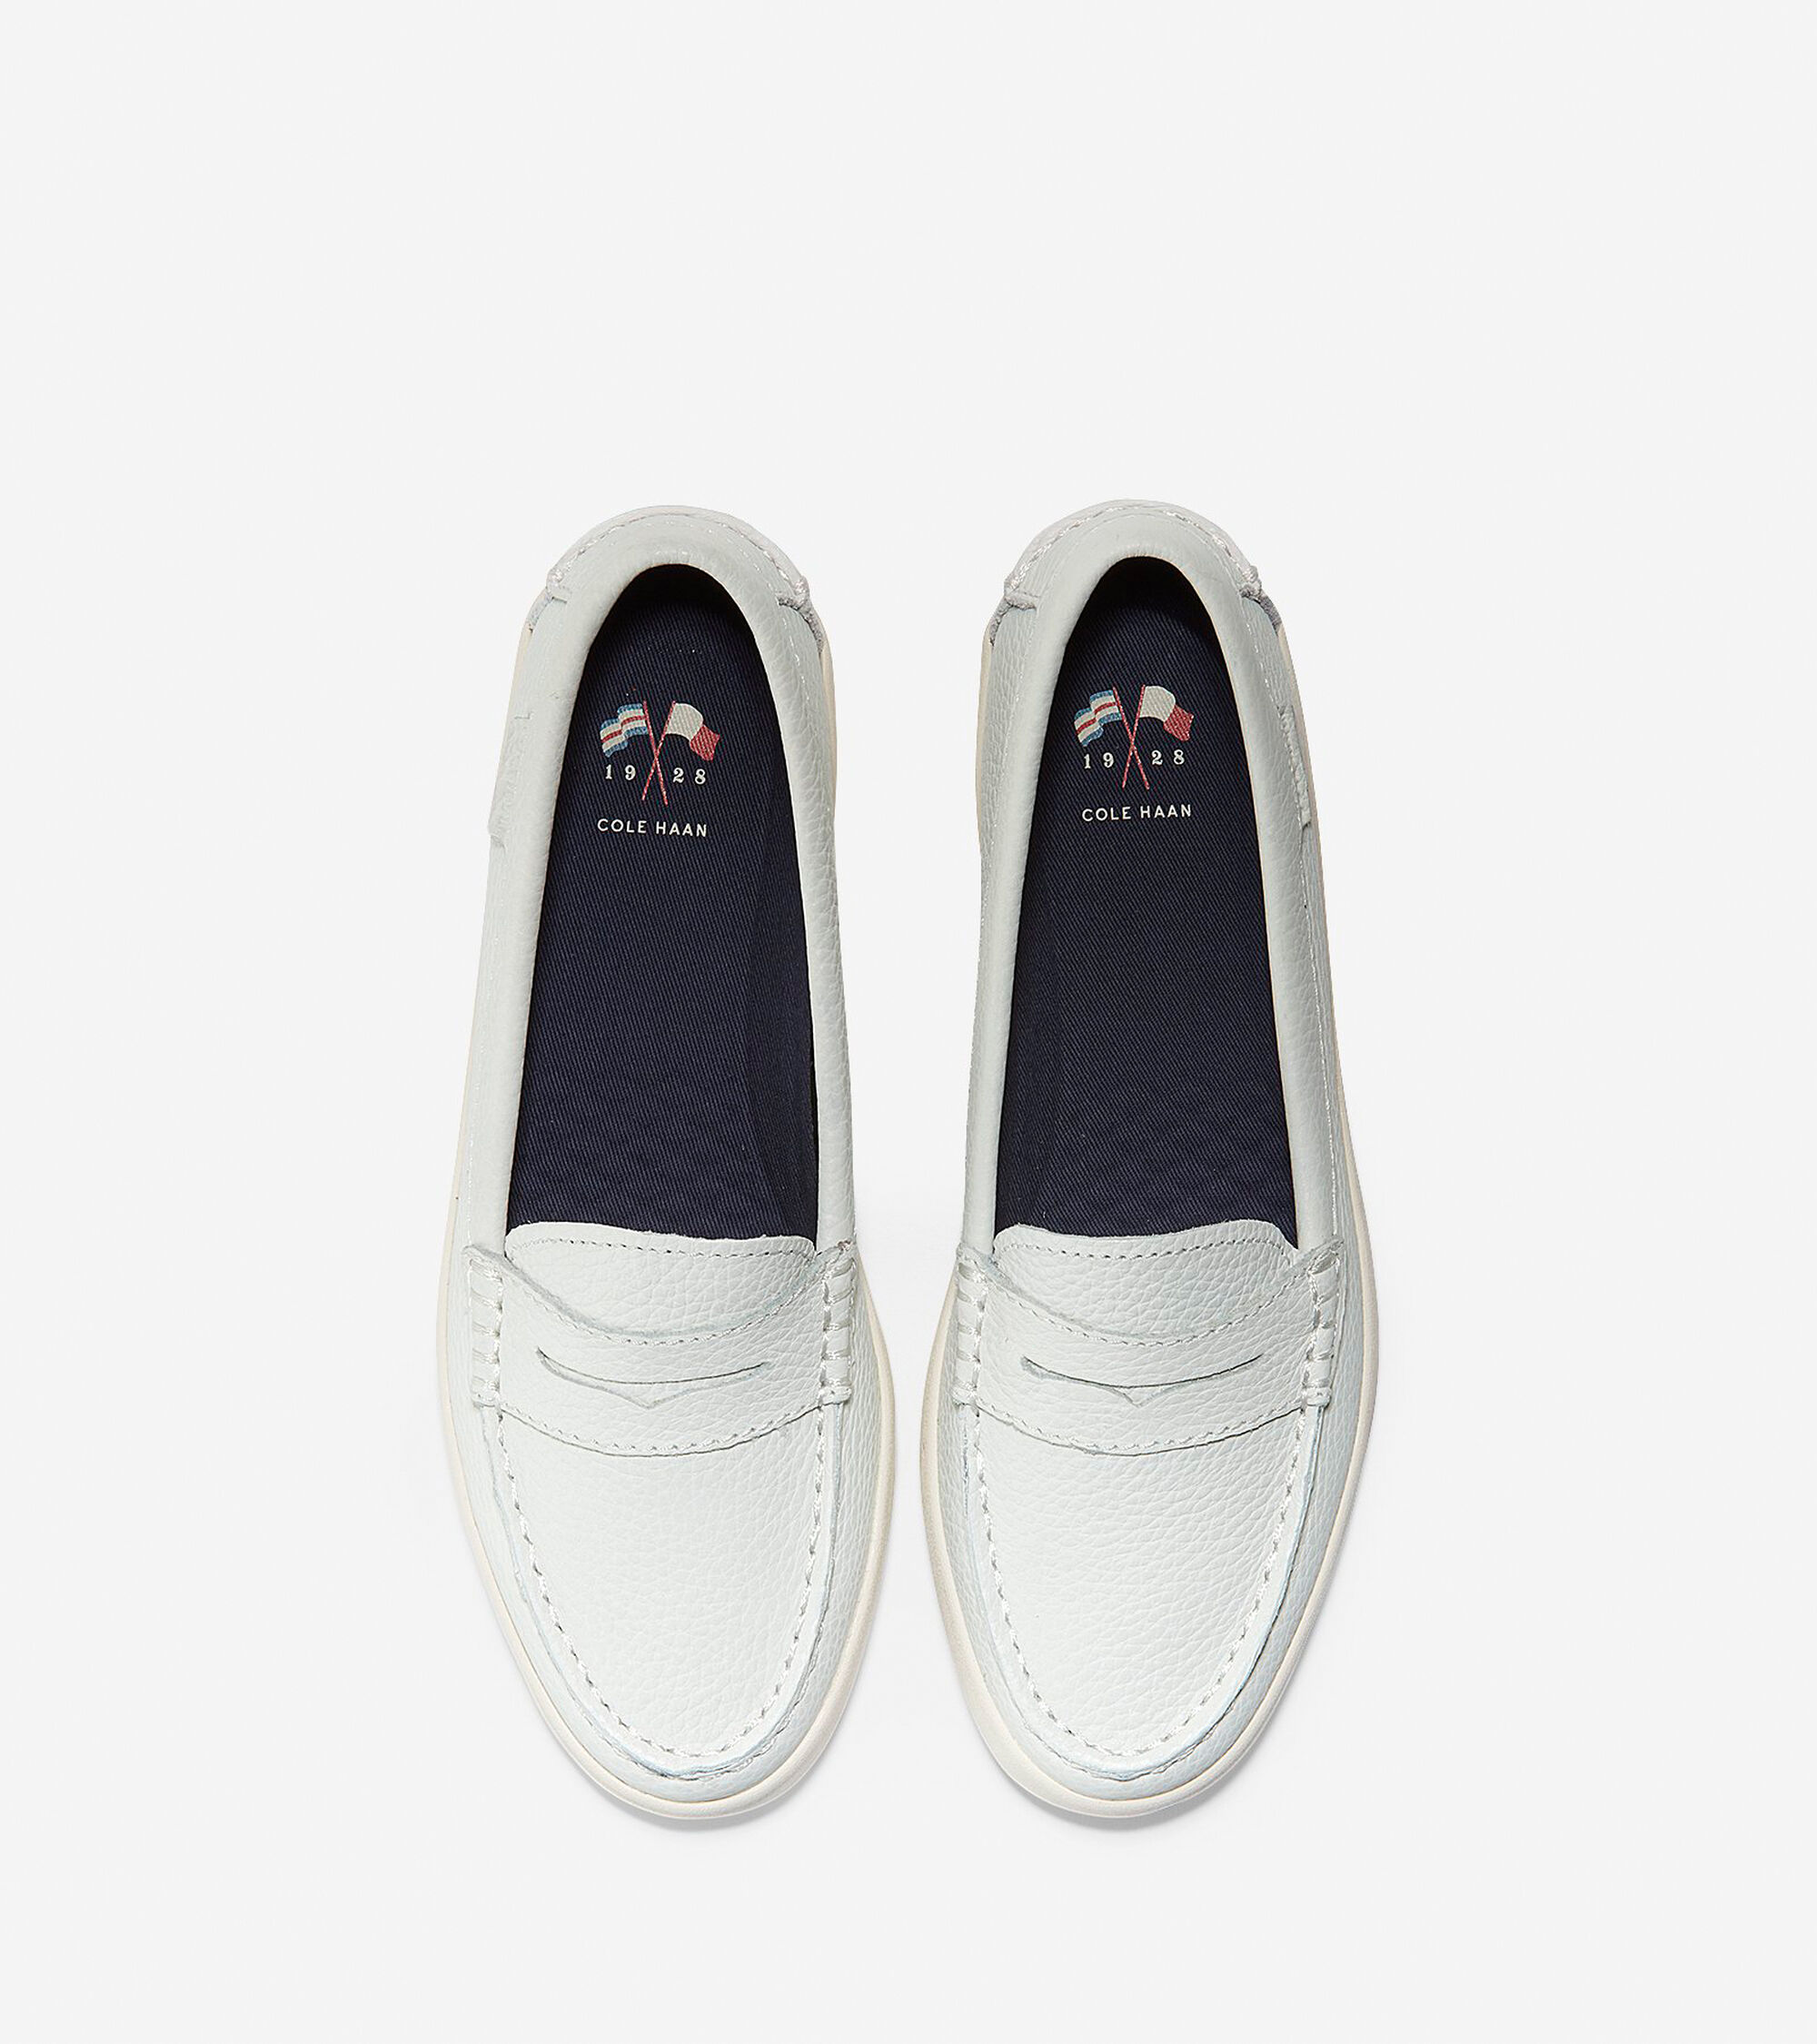 82b008d6d37e Cole Haan Womens Nantucket Loafer. USD 47.97. from US. Add to wishlist  Create Order. View Details. 2ordered. Cole Haan Ava Pump (65mm)